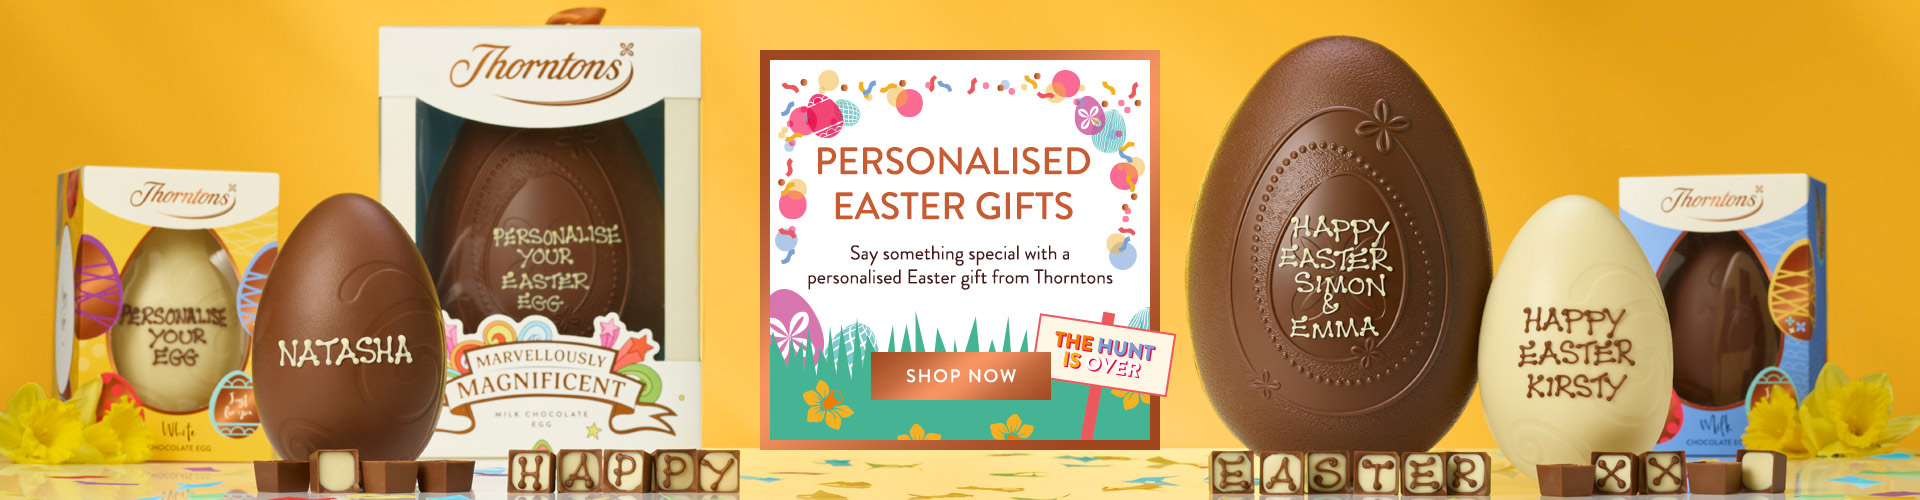 Say something special with a personalised Easter gift from Thorntons. Our expert icers have it all in hand, creating incredible Easter gift ideas exclusively for everyone.